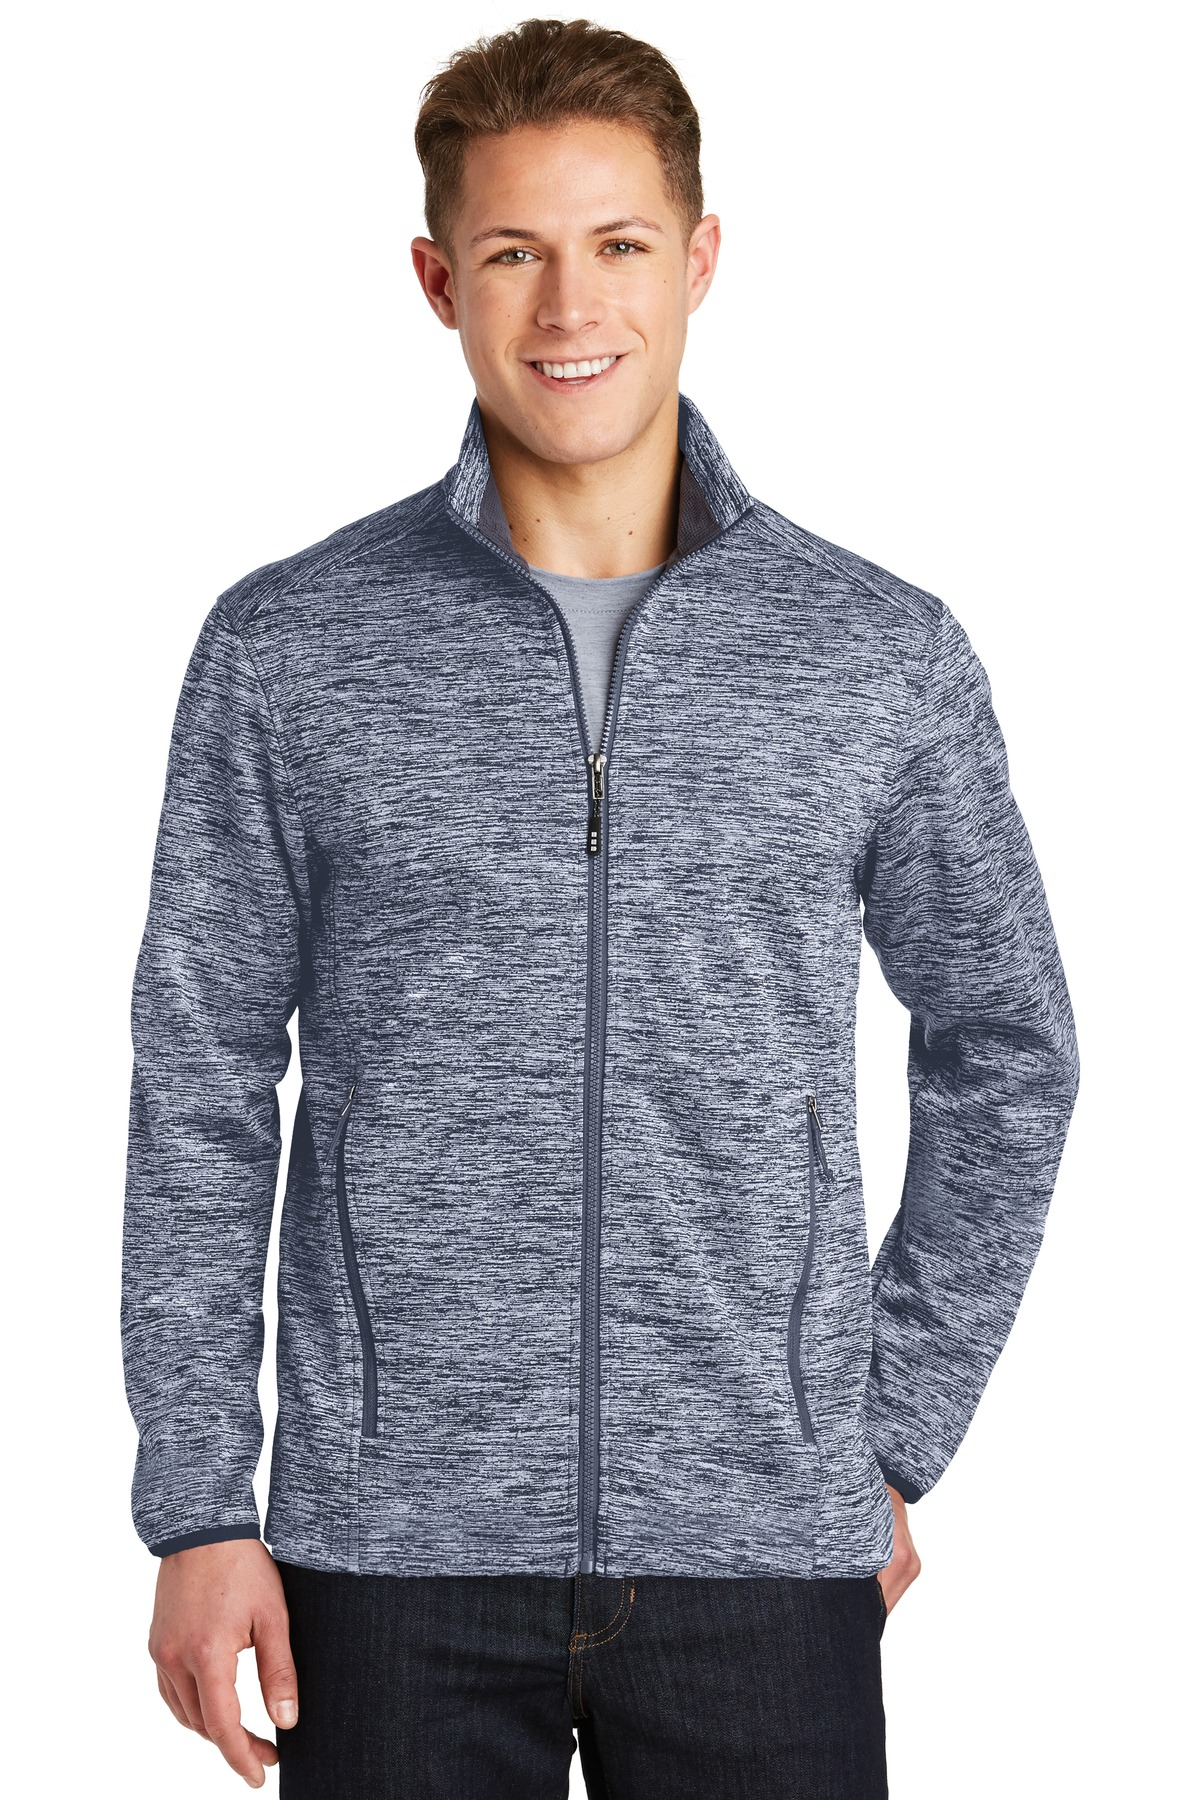 Sport-Tek PosiCharge Electric Heather Soft Shell Jacket. JST30